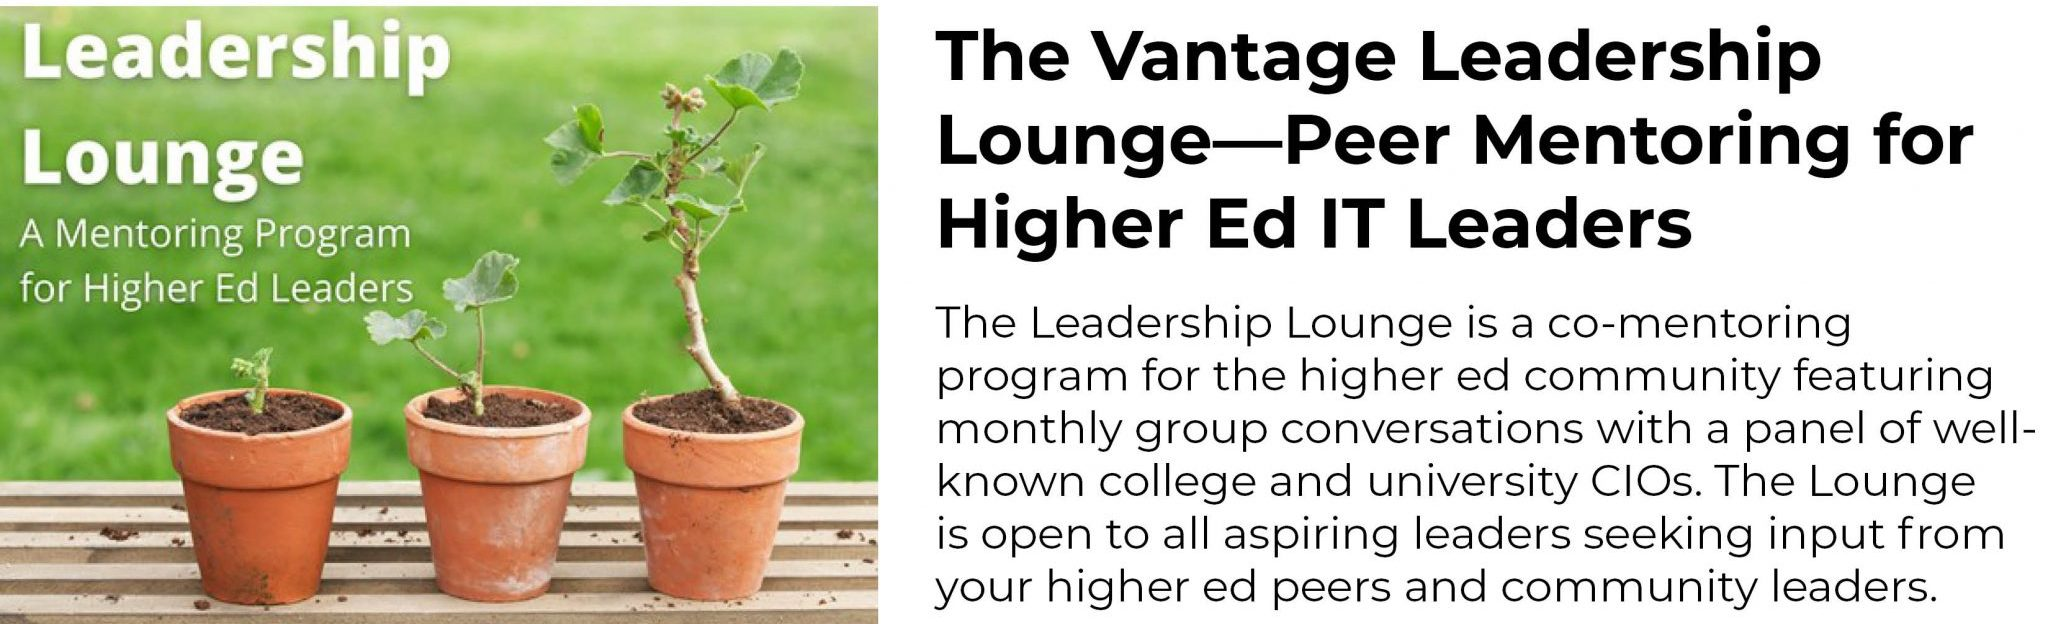 The Vantage Leadership Lounge—Peer Mentoring for Higher Ed IT Leaders The Leadership Lounge is a co-mentoring program for the higher ed community featuring monthly group conversations with a panel of well-known college and university CIOs. The Lounge is open to all aspiring leaders seeking input from your higher ed peers and community leaders.